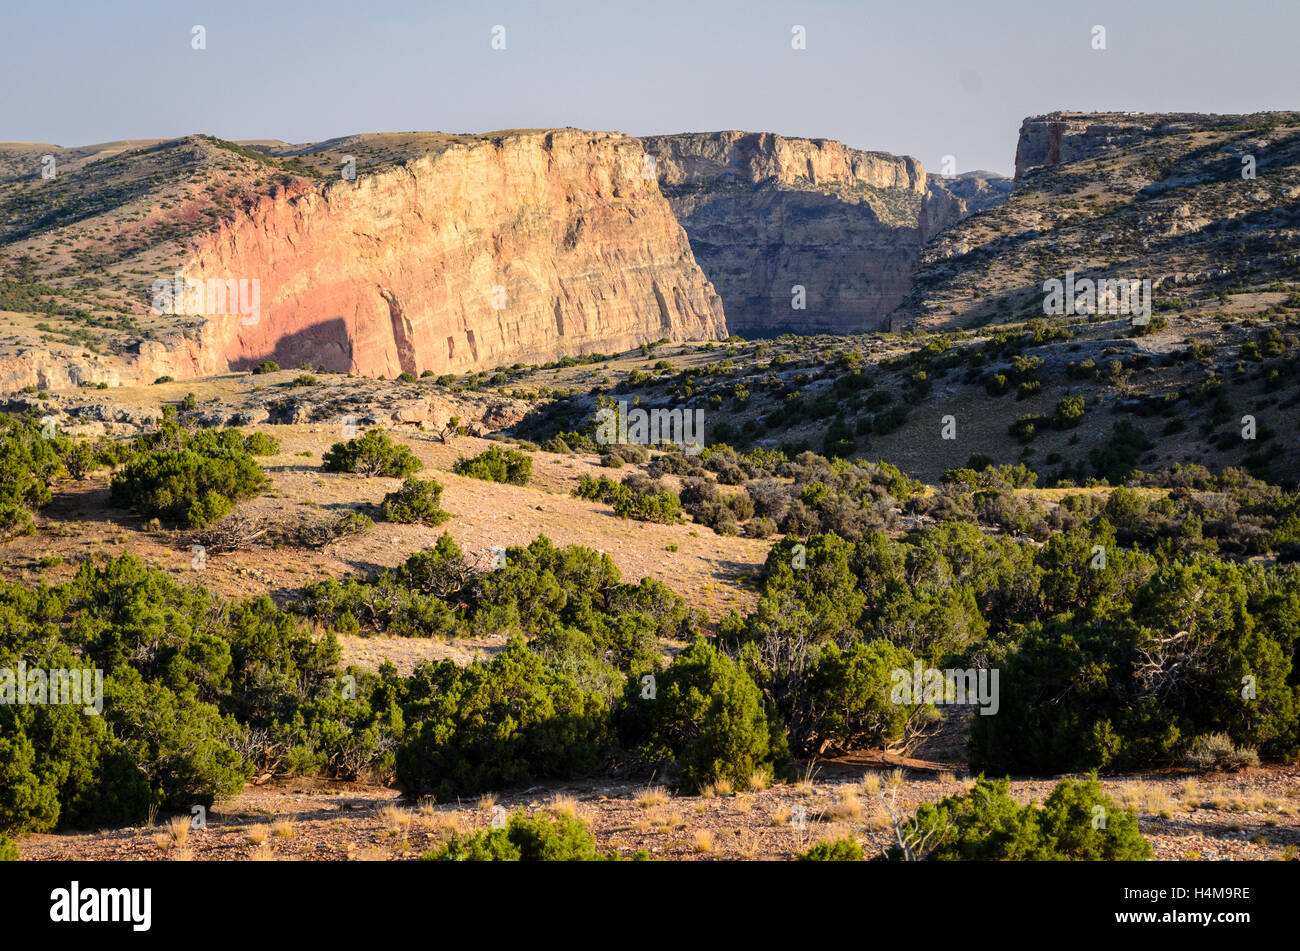 Bighorn Canyon National Recreation Area - Stock Image